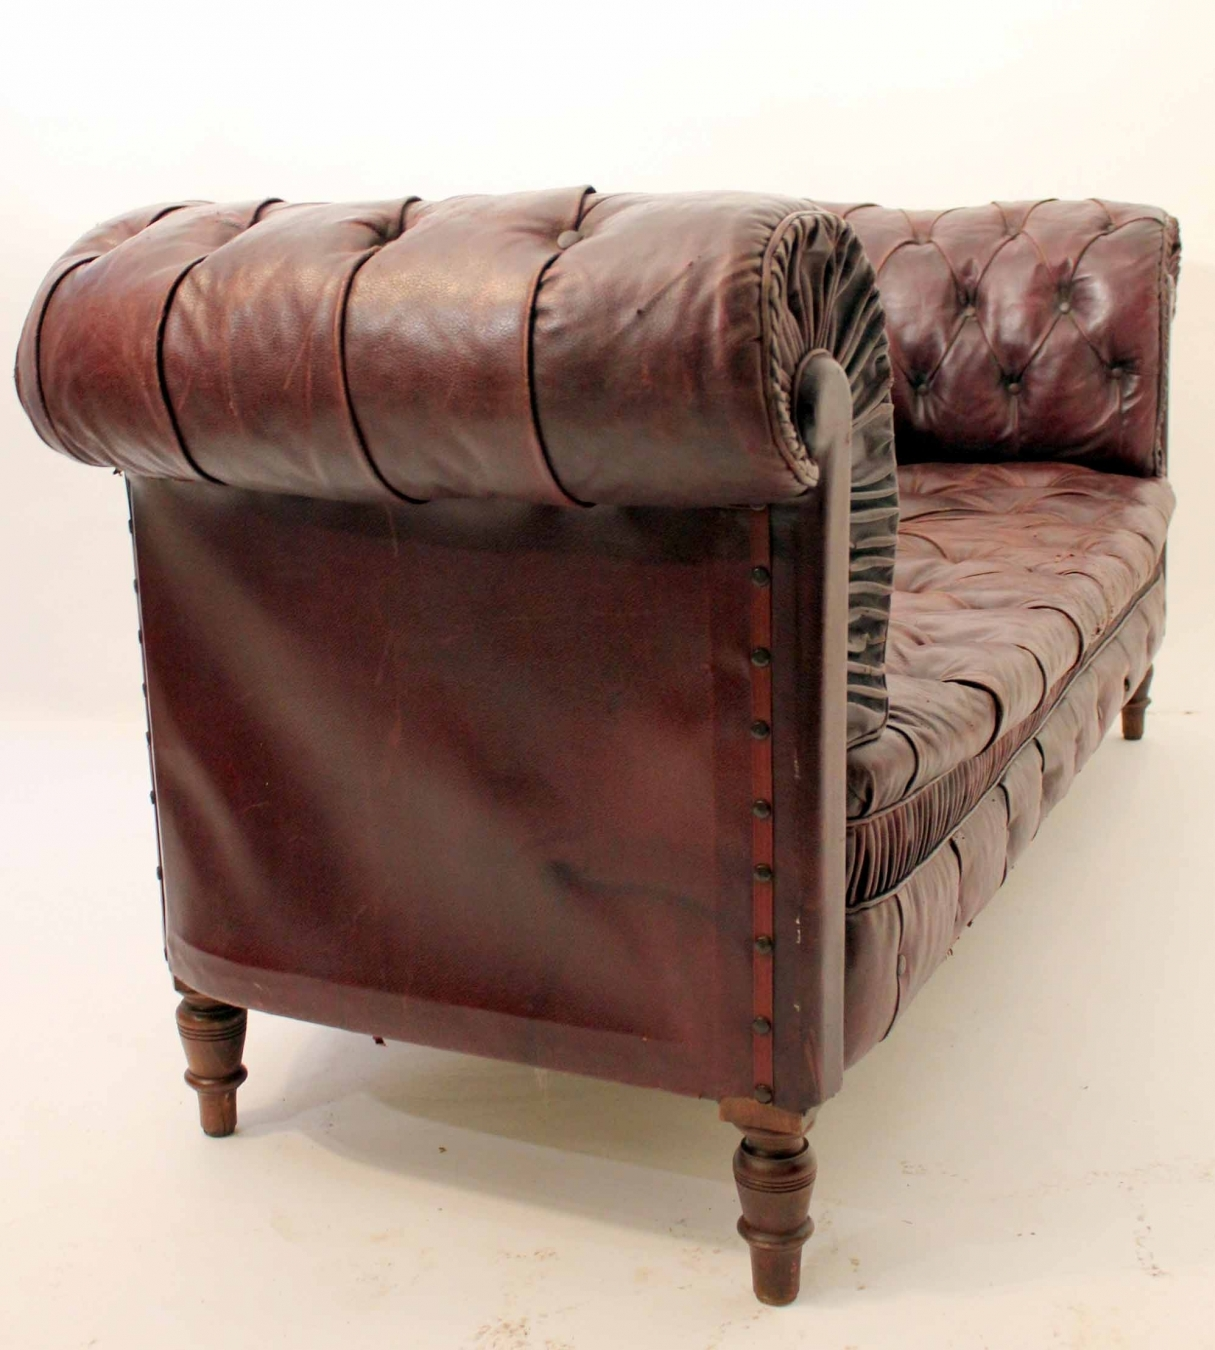 Astonishing Red Leather Chesterfield Sofa Trendfirst Bralicious Painted Fabric Chair Ideas Braliciousco